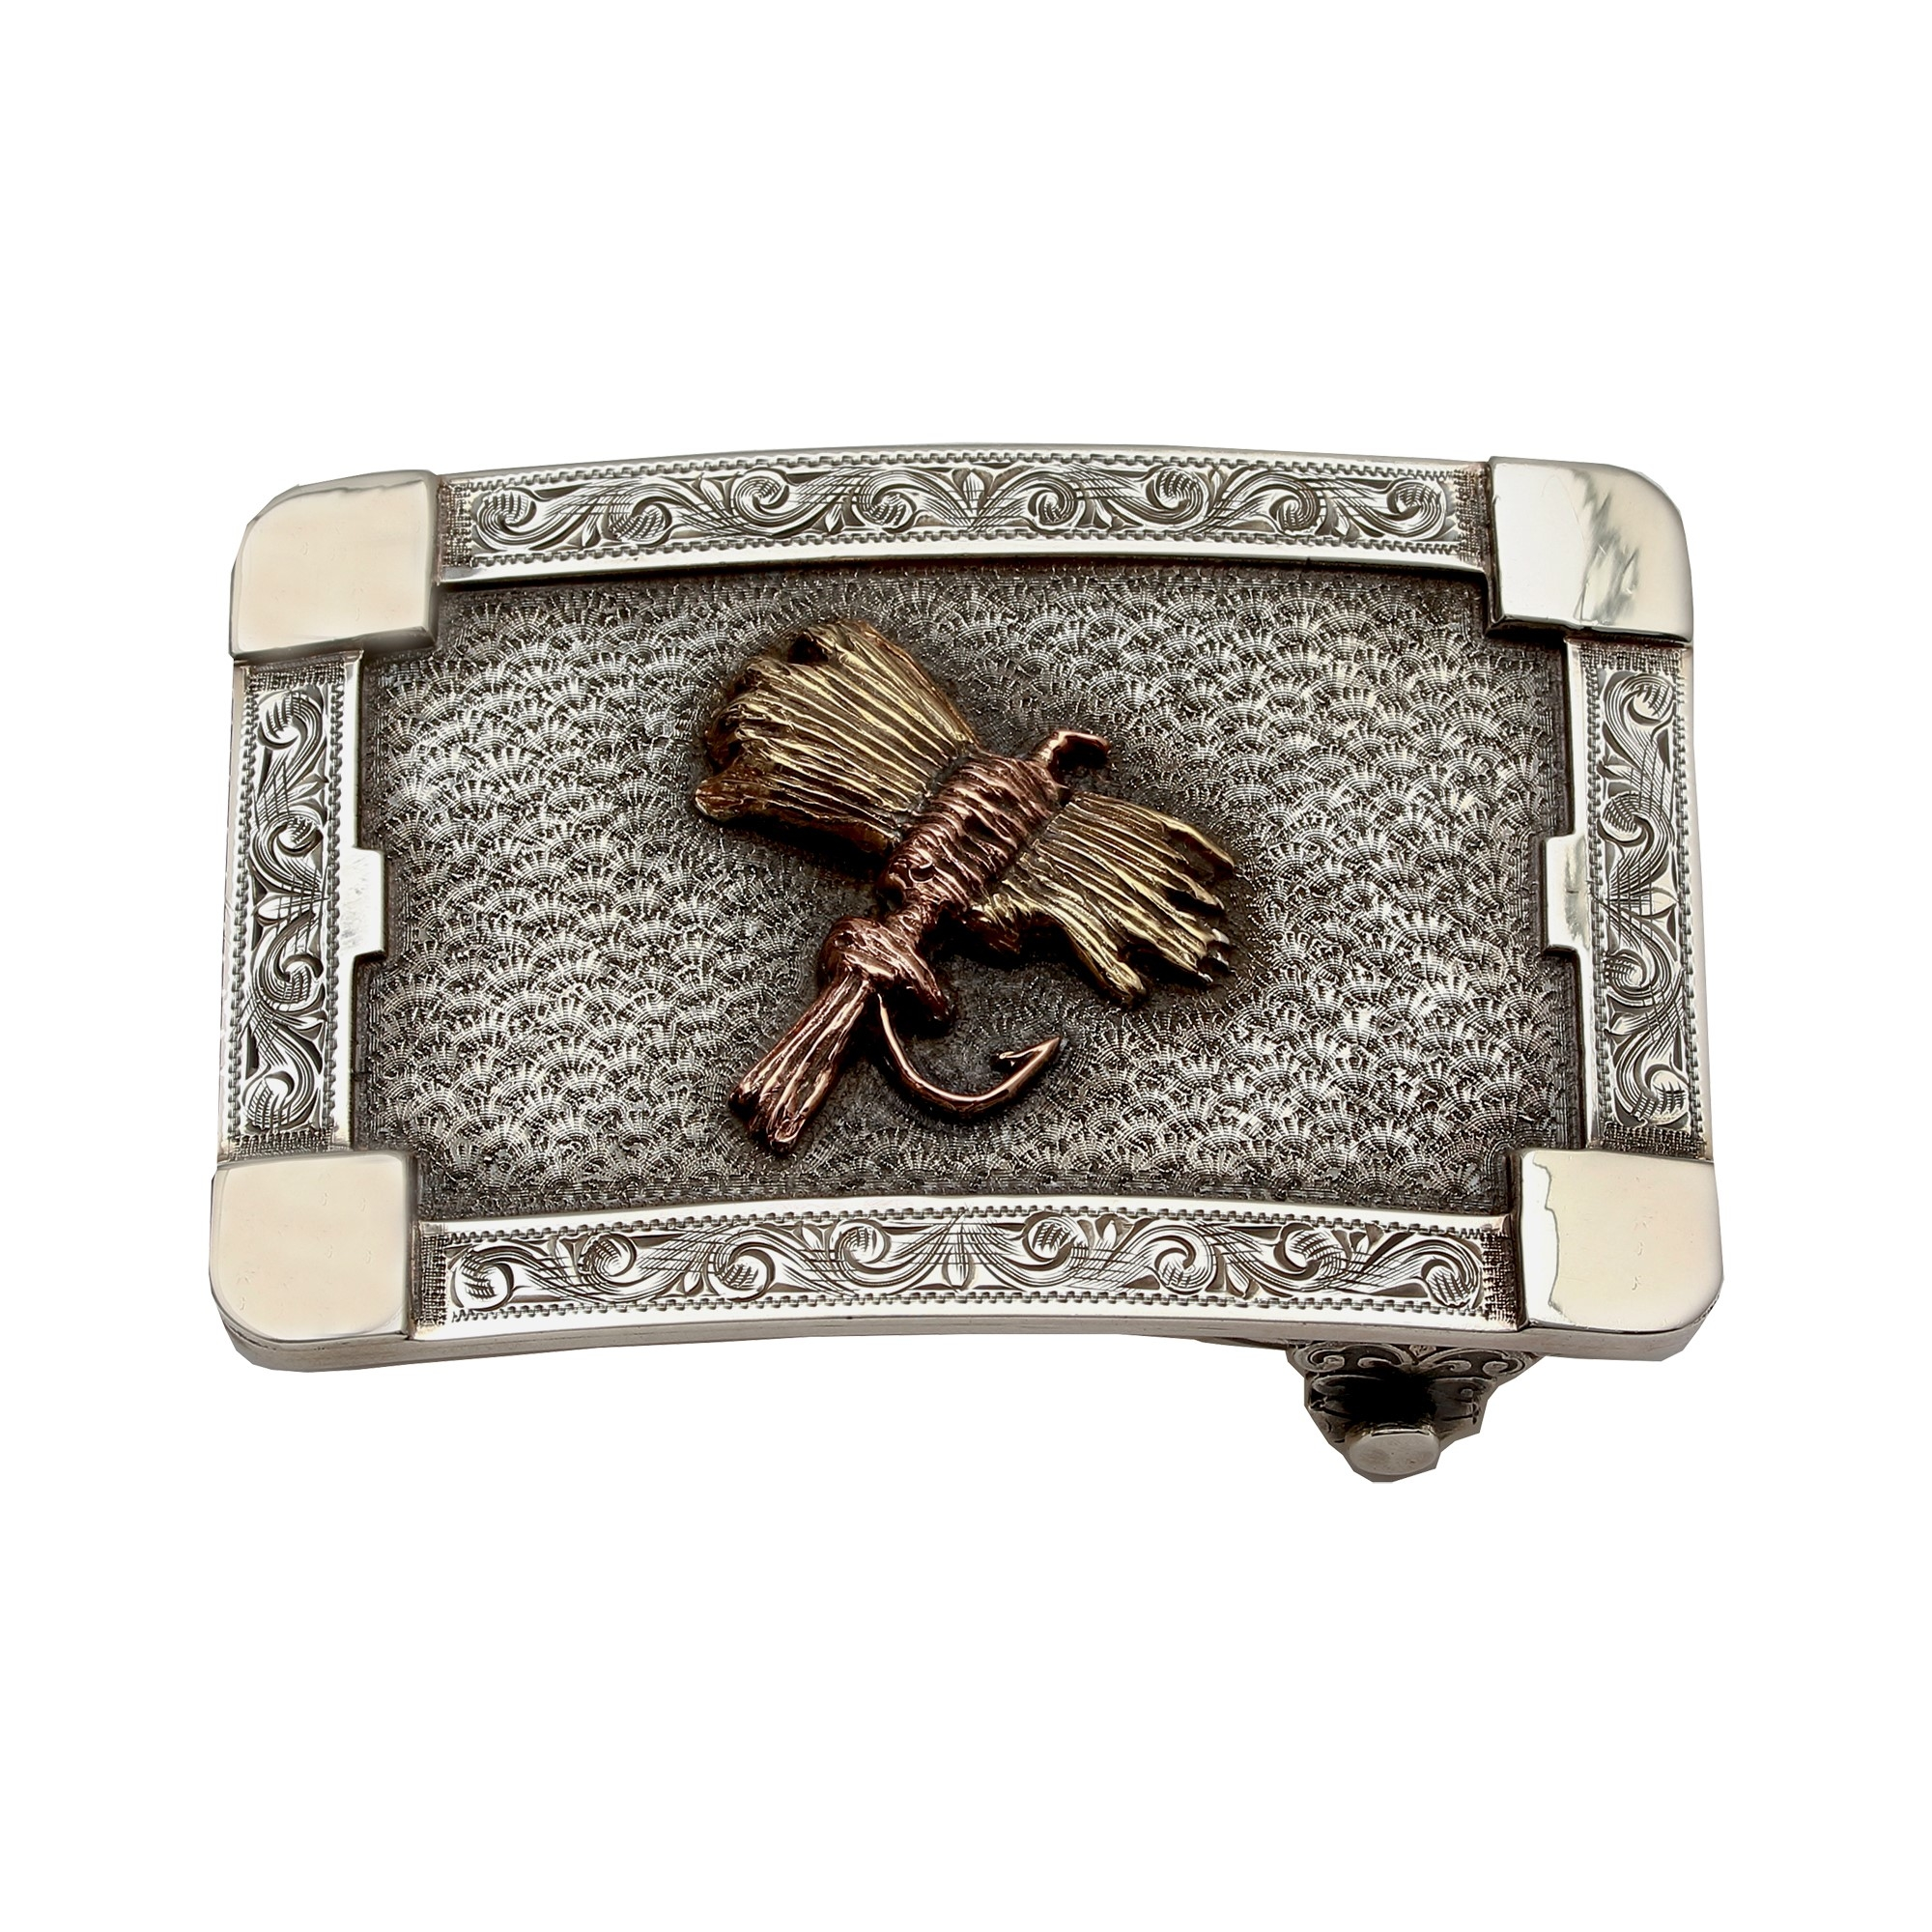 Clint Orms  Sterling Silver    Belt Buckle MARTIN-1823